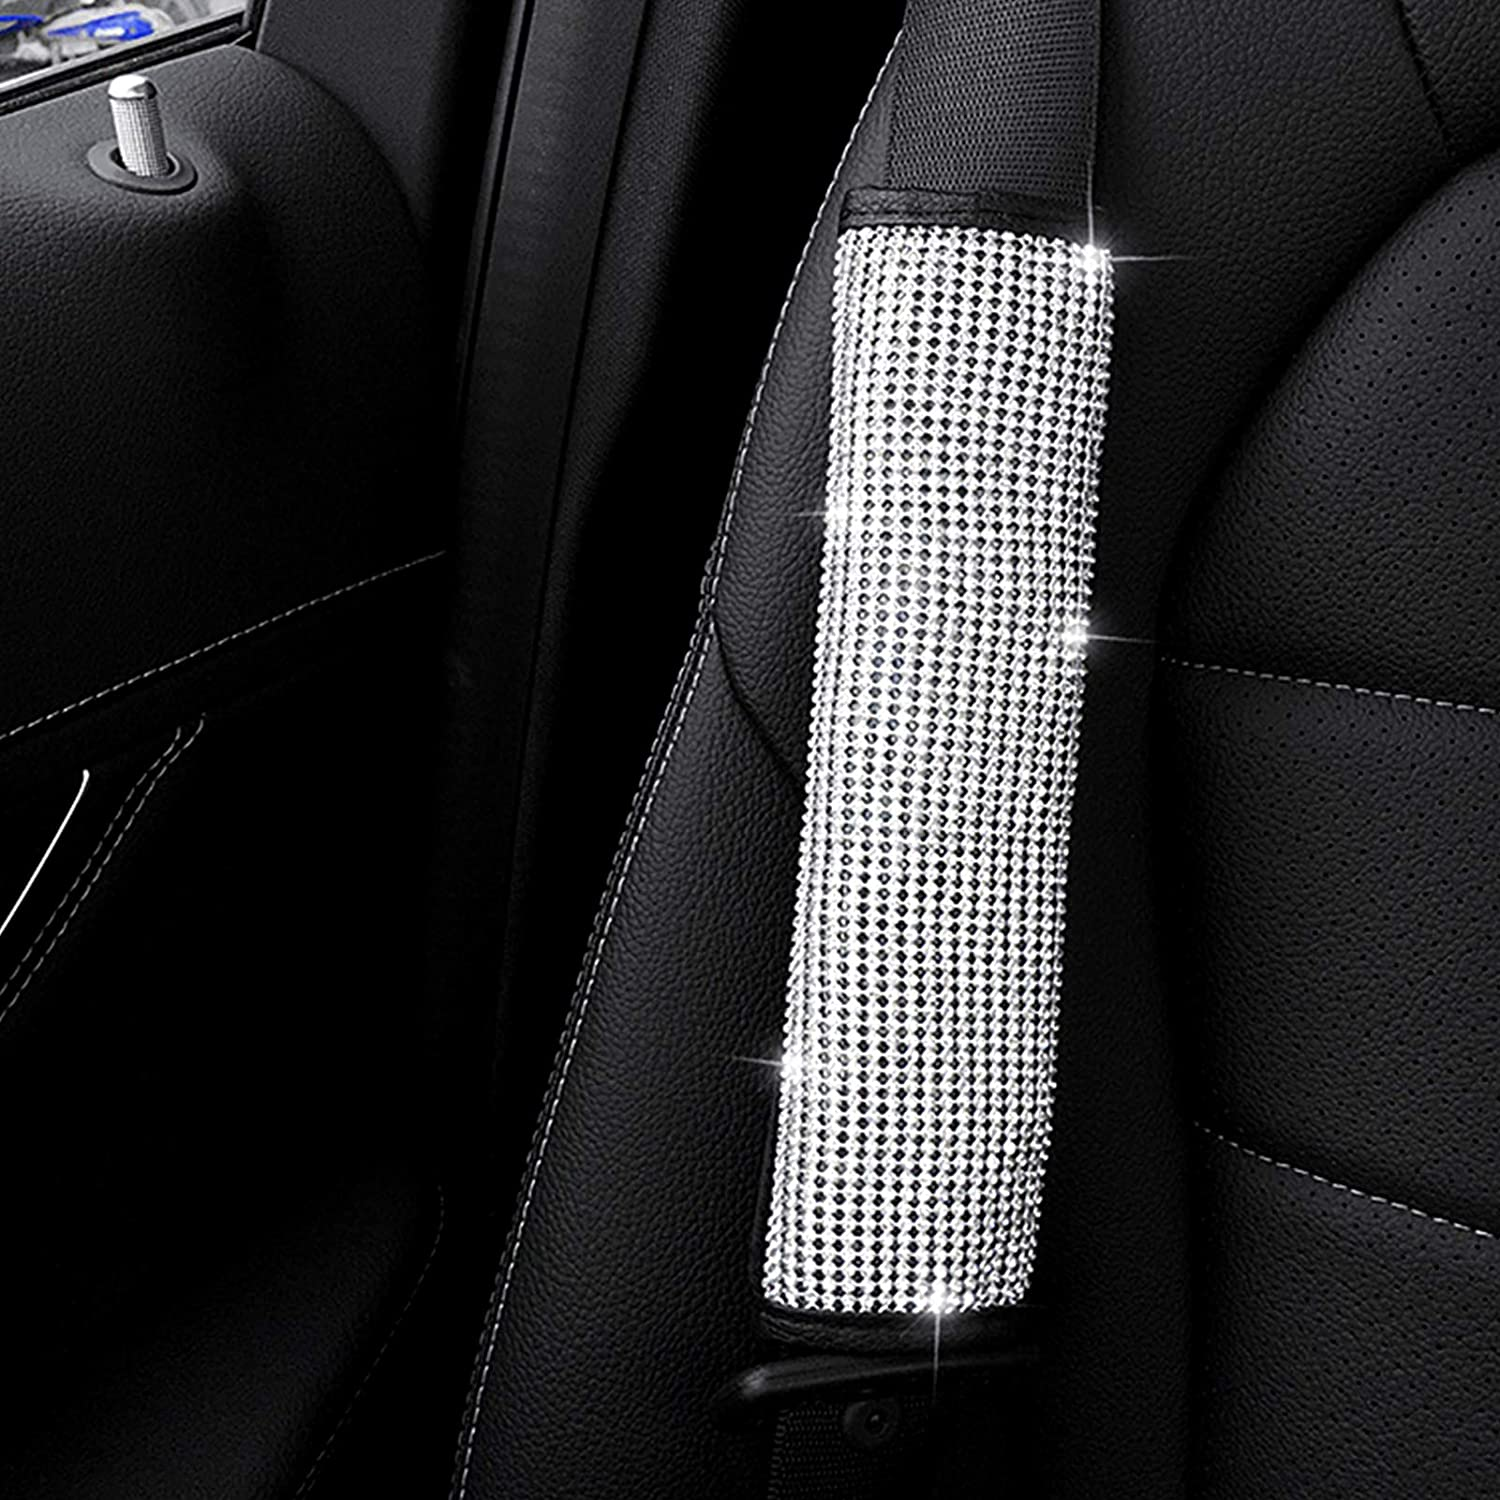 Colour Guoord 【2021 Upgraded】 Bling Soft Seat Belt Shoulder Pads with Rhinestones Car Seat Belt Covers Girls,Ladies as Gift and Accessories for Women Handmade Crystal Sparkling Car Decorations